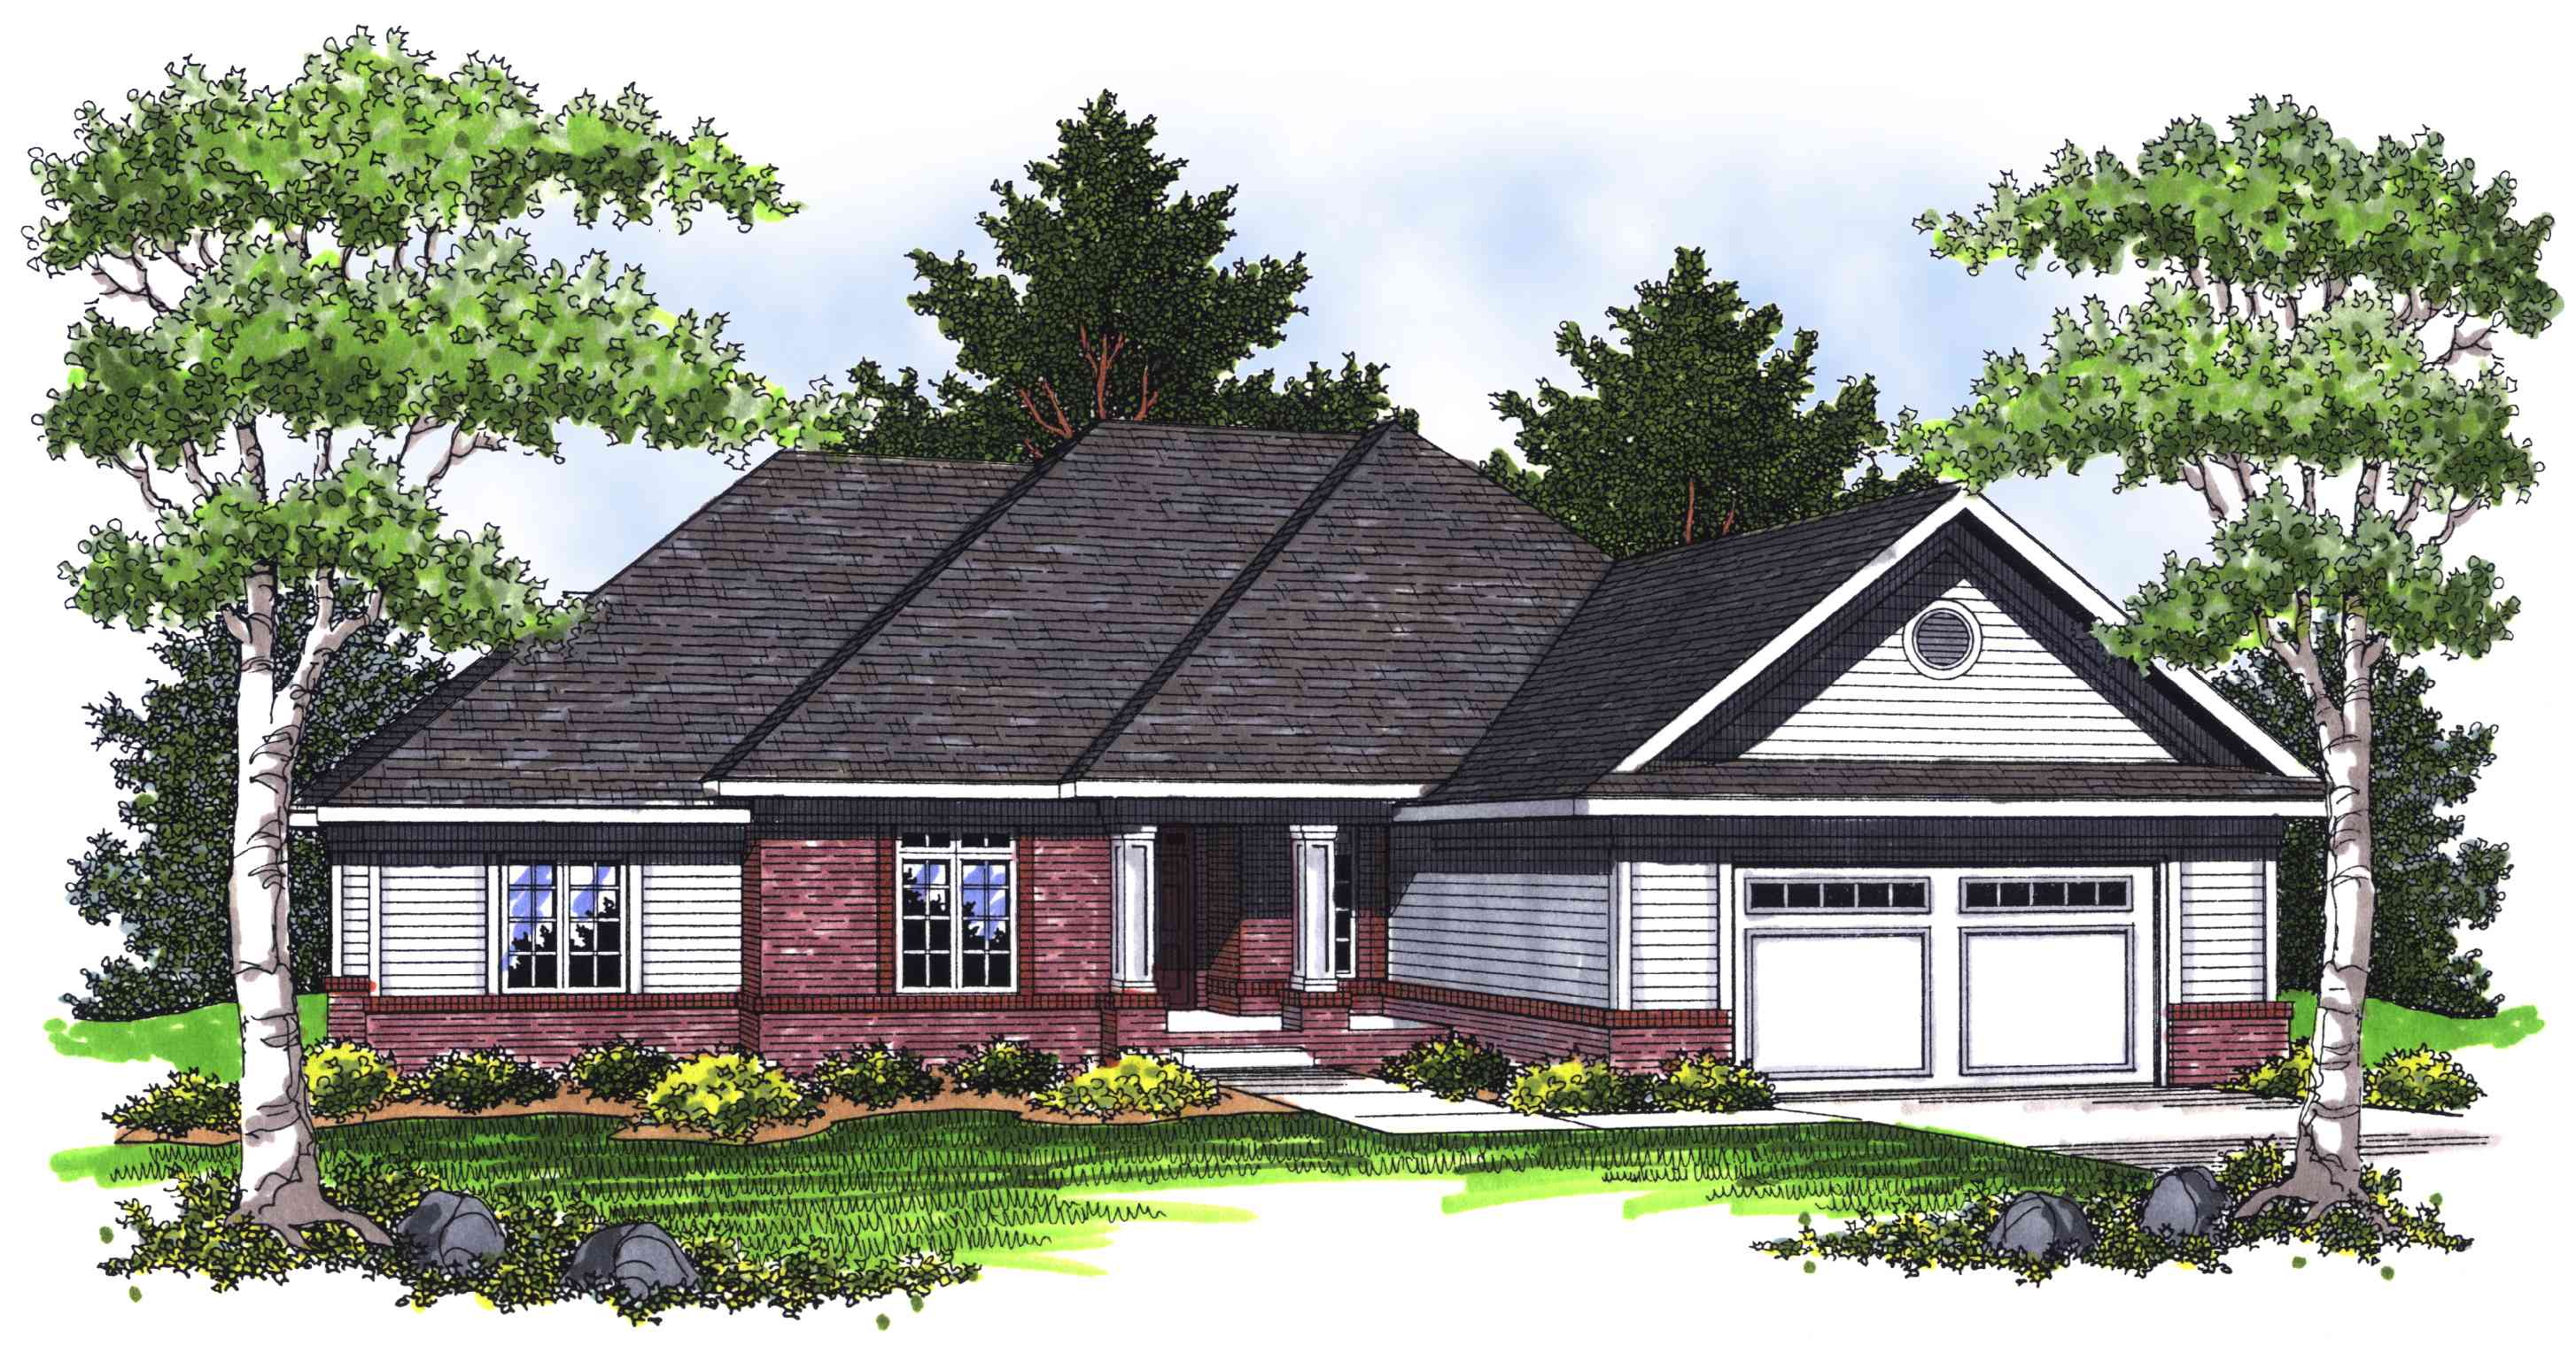 Ranch Home With Hip Roof 89231ah Architectural Designs House Plans